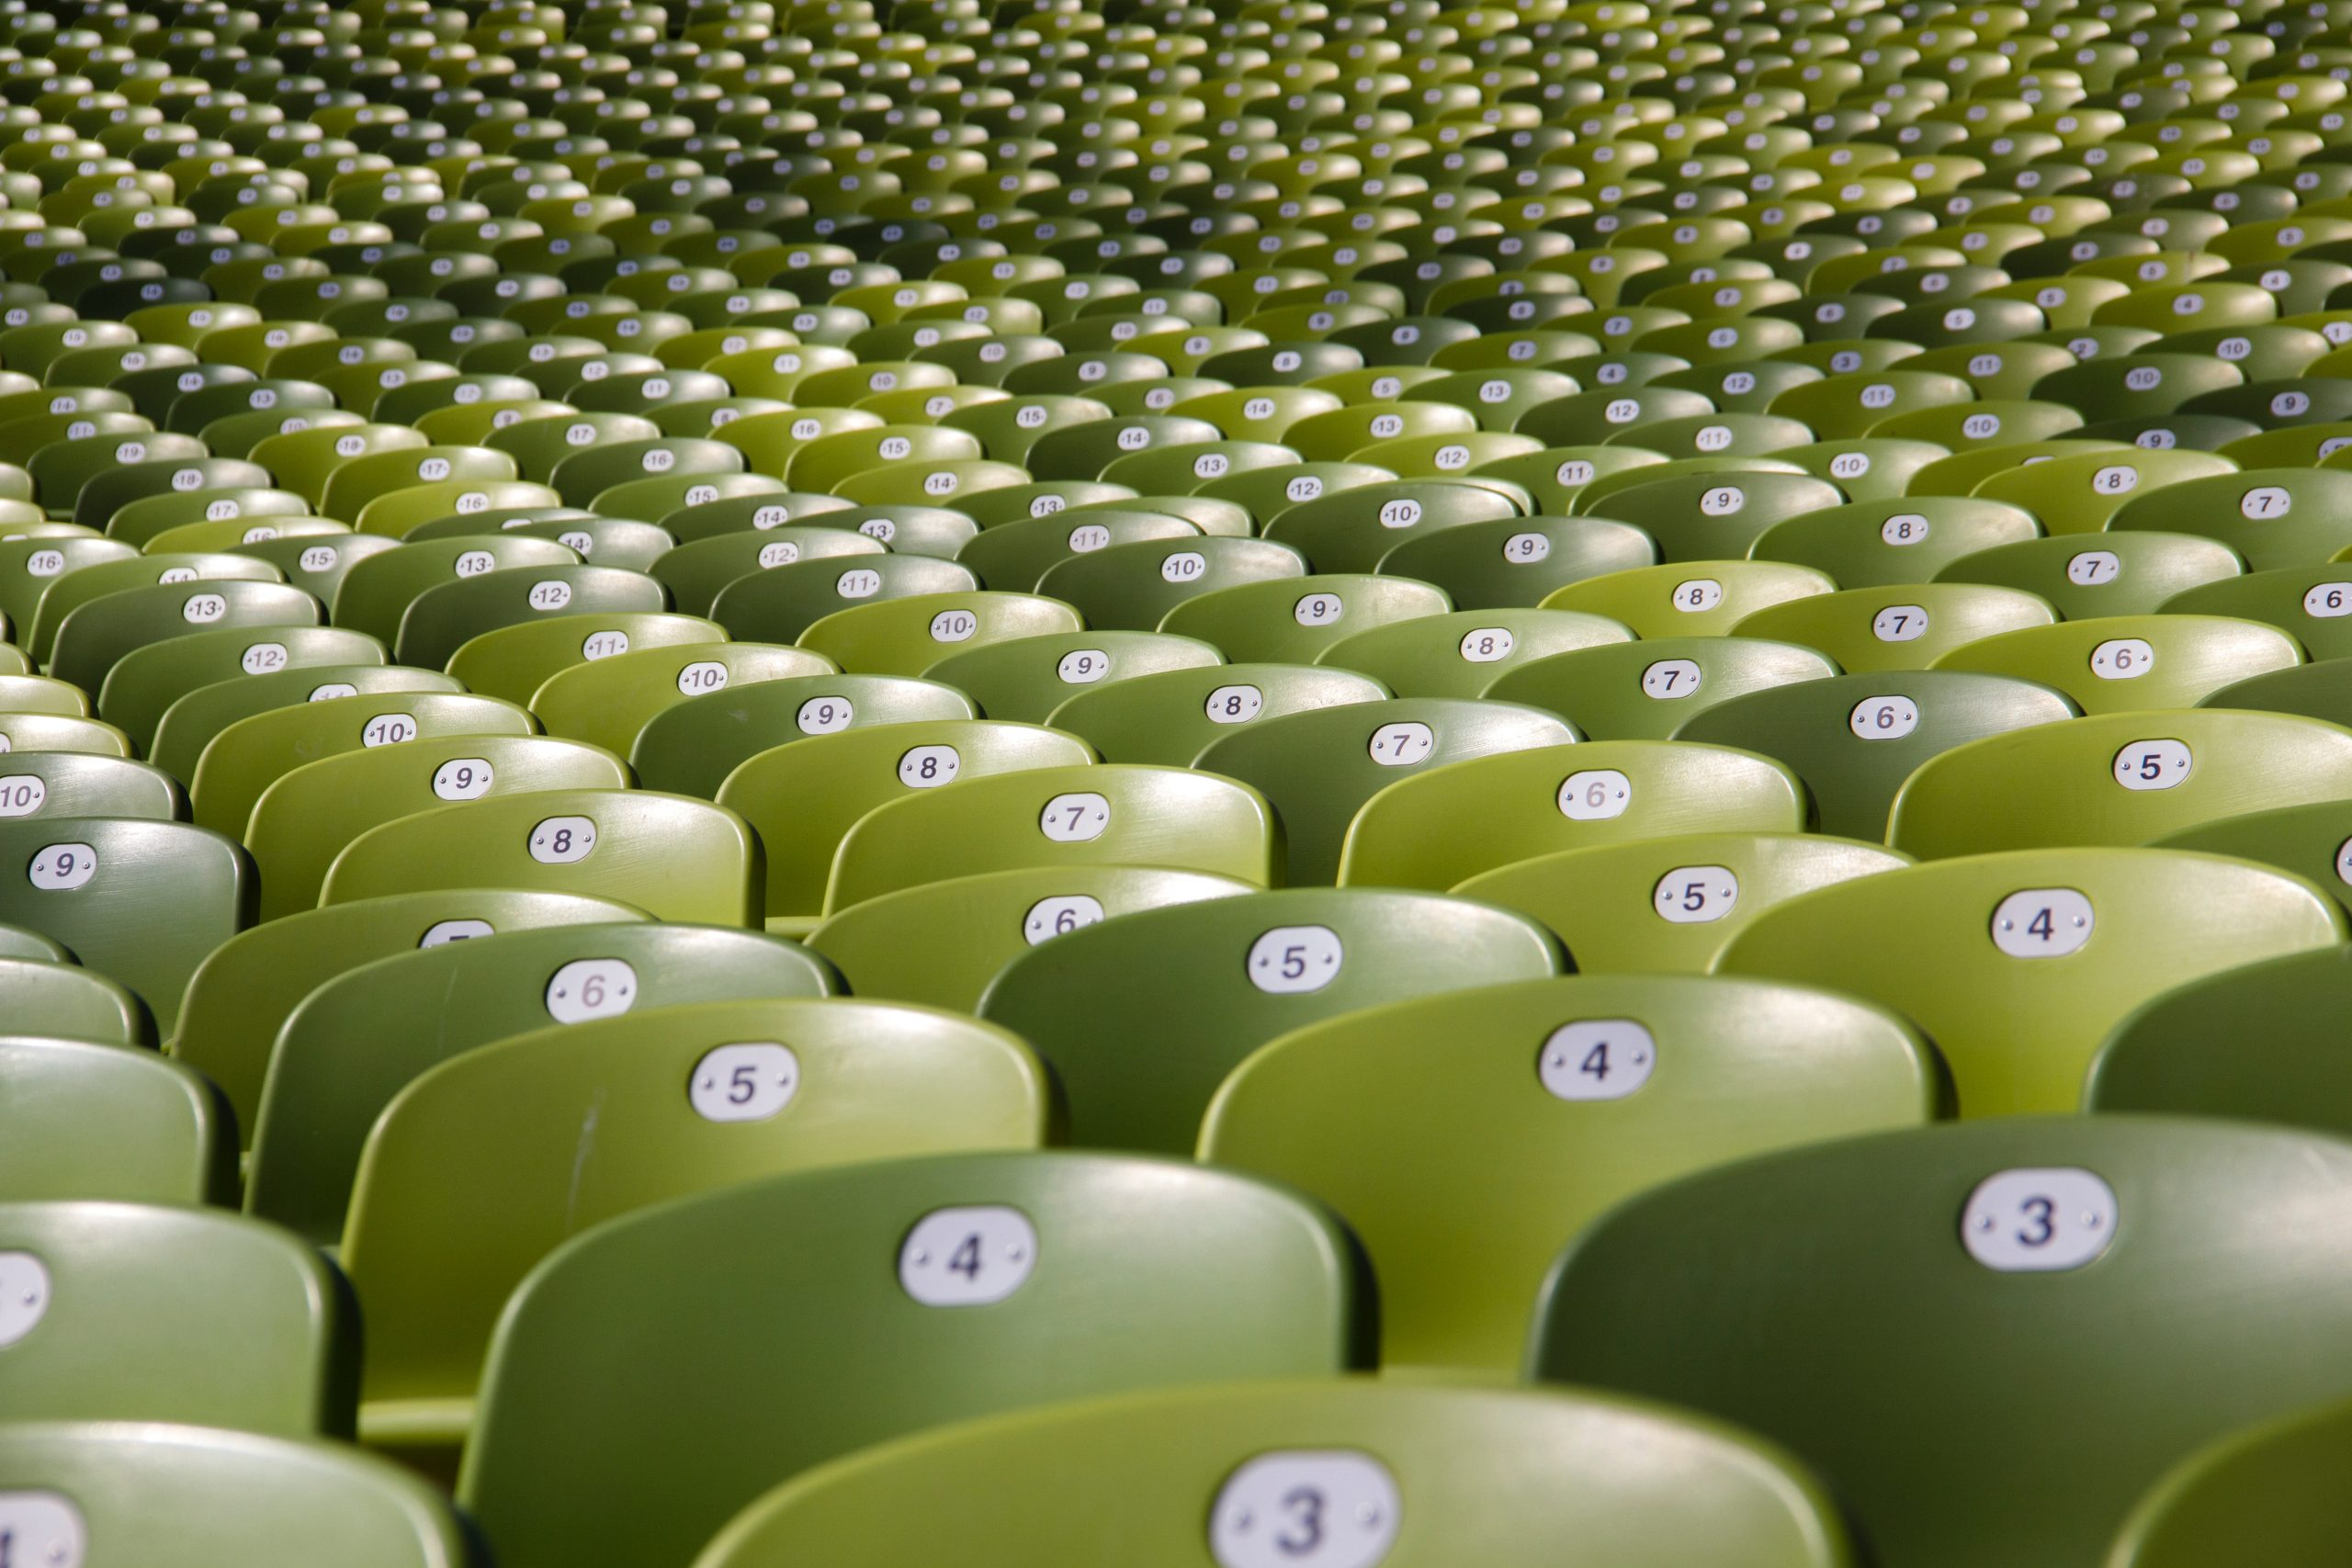 rows of green seating